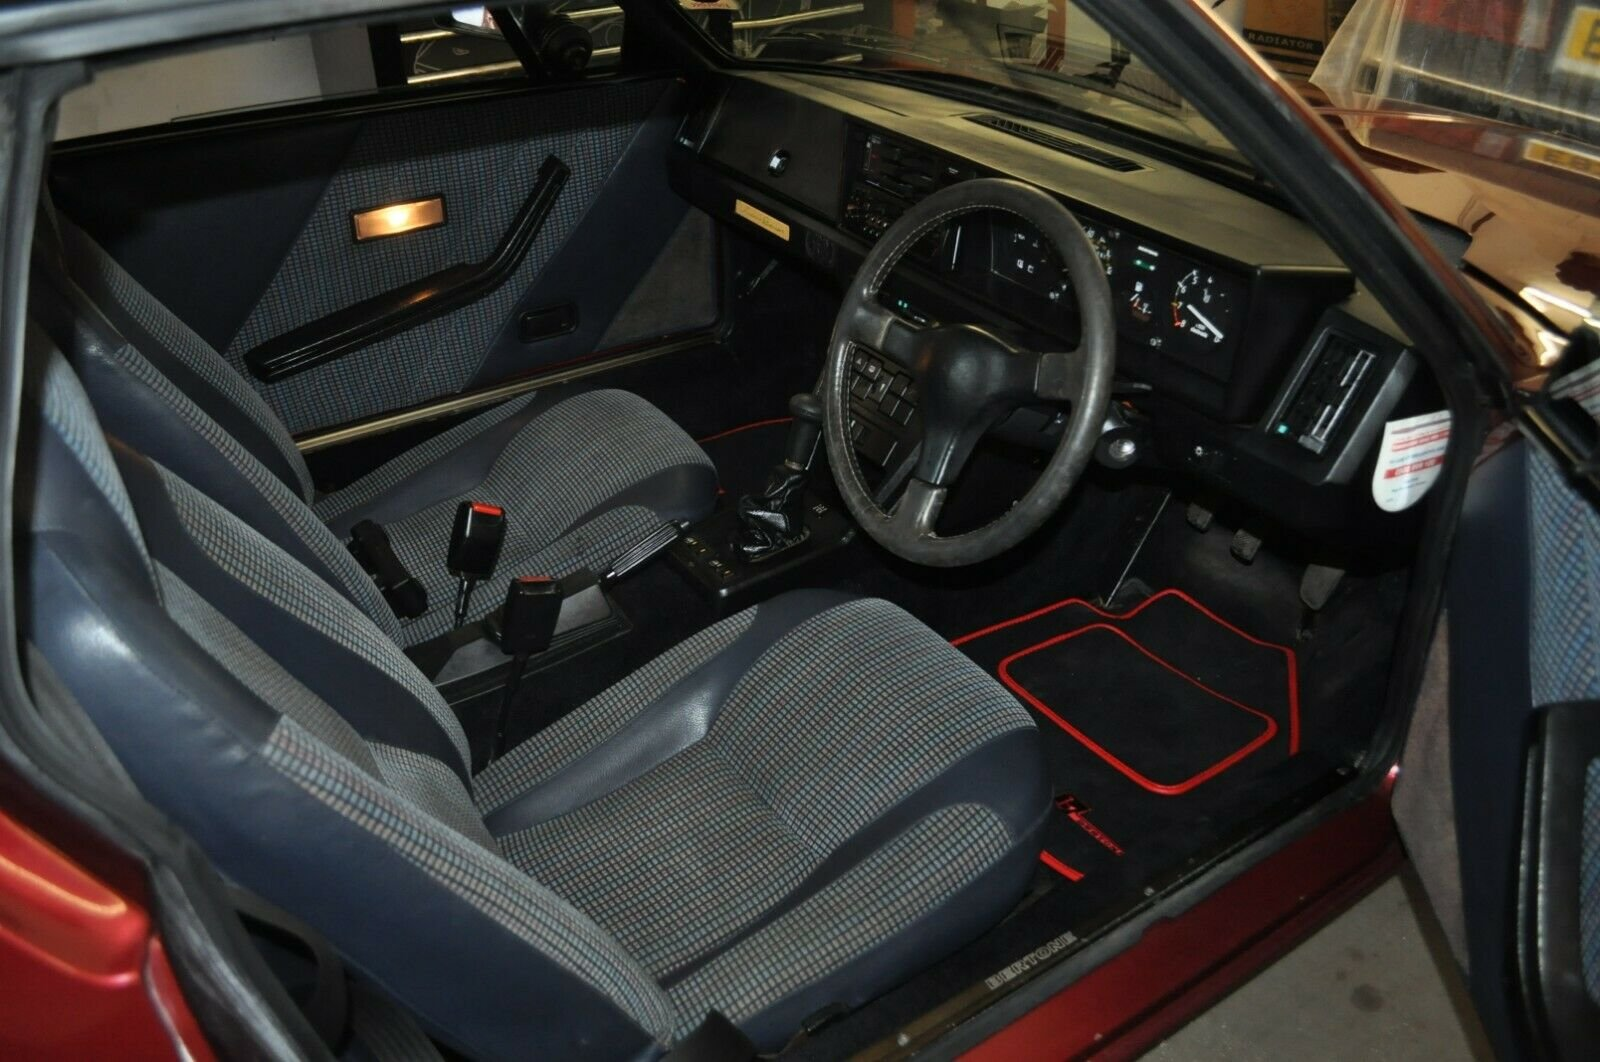 1989 FIAT X/19 GRAND FINALE LIMITED EDITION GOOD CONDITION For Sale (picture 4 of 6)